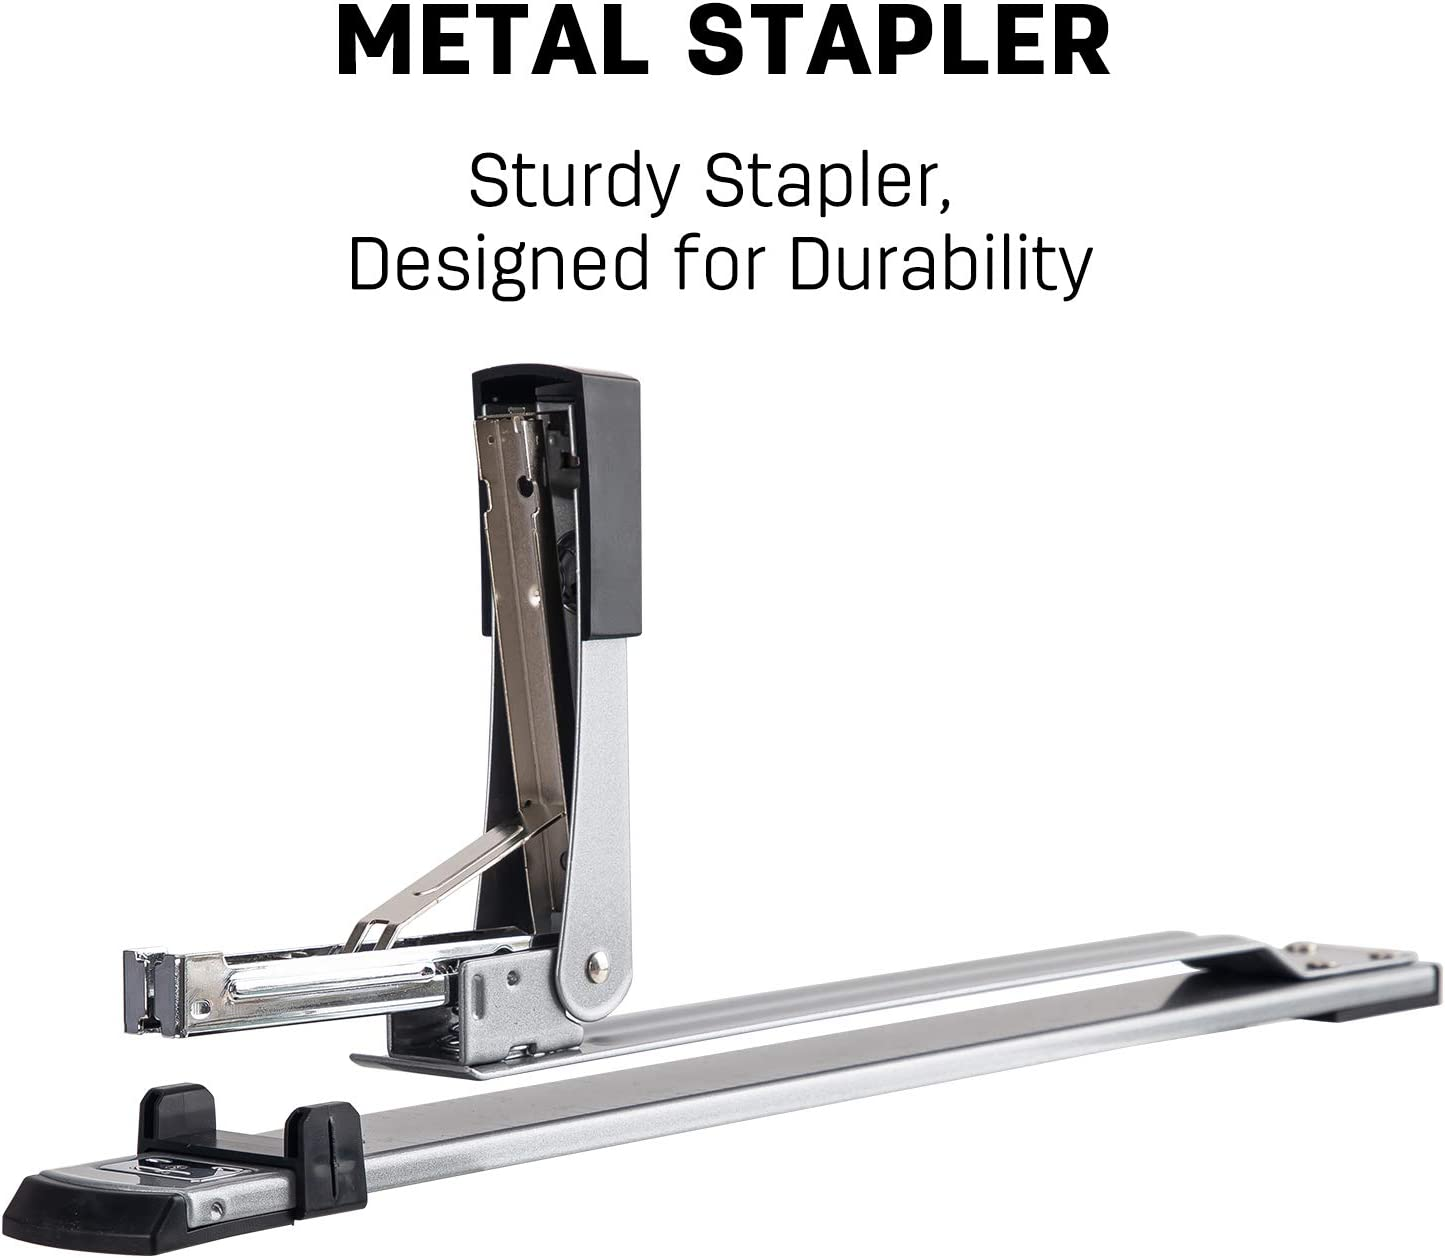 Deli Long Reach Stapler, 25 Sheet Capacity, Long Arm Standard Staplers for Booklet or Book Binding, Silver : Office Products